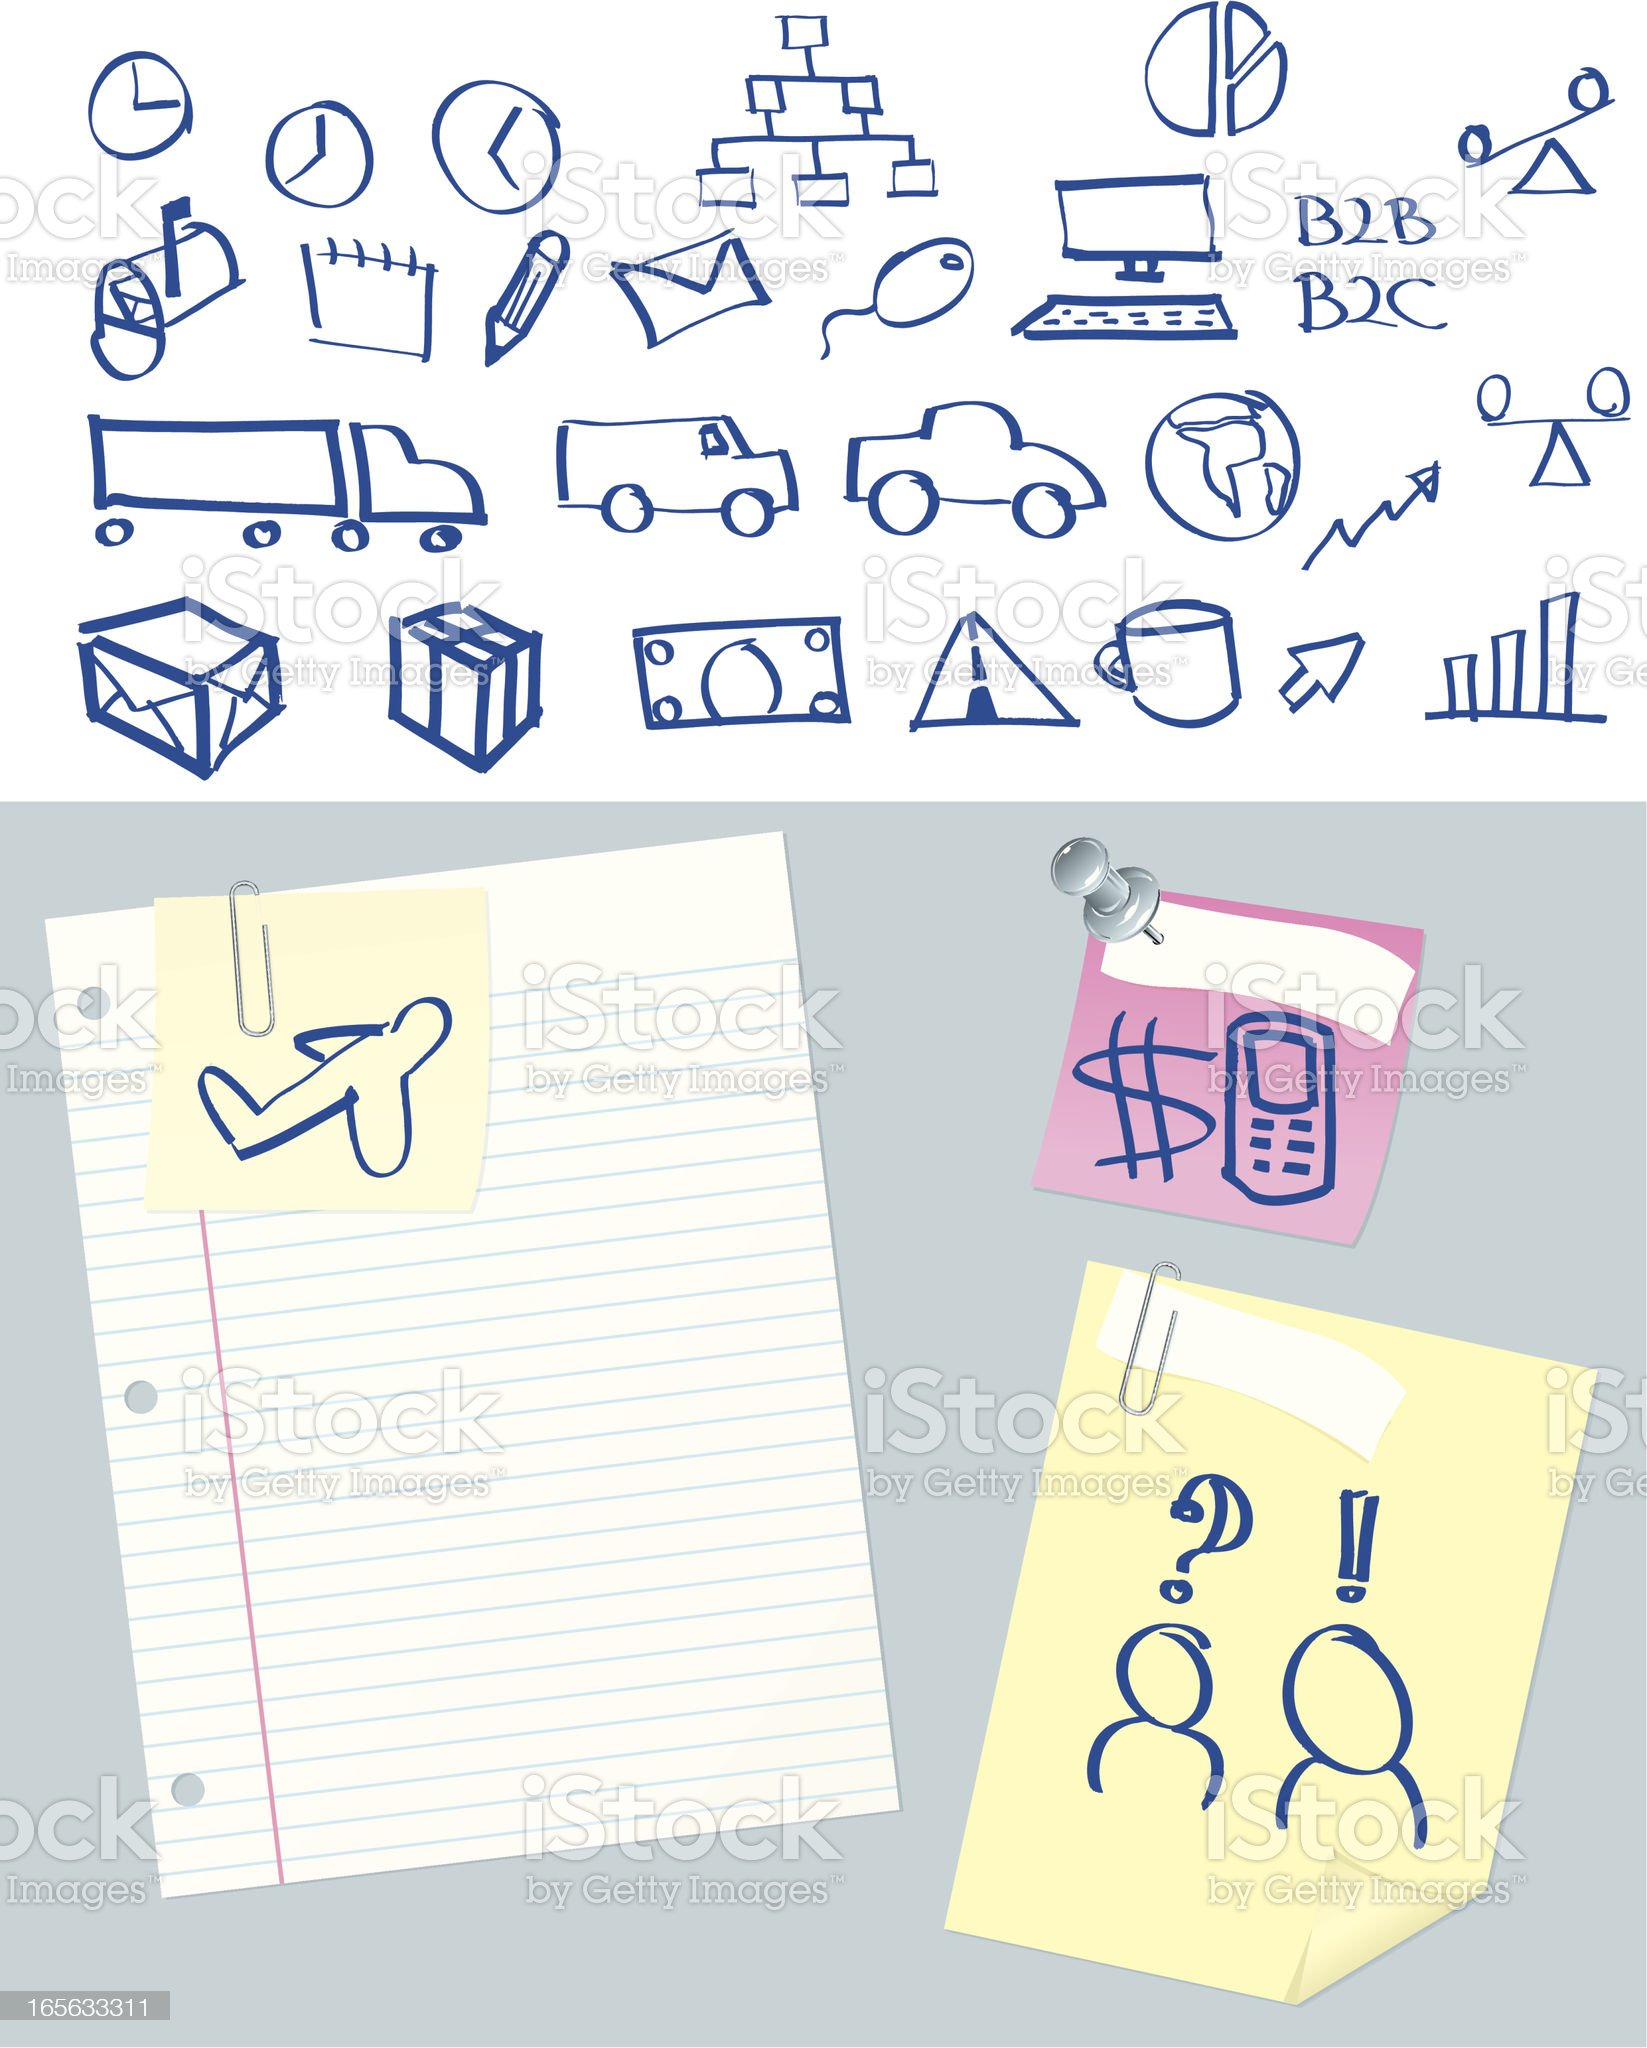 Business Concepts Doodle Notes and Stationery royalty-free stock vector art